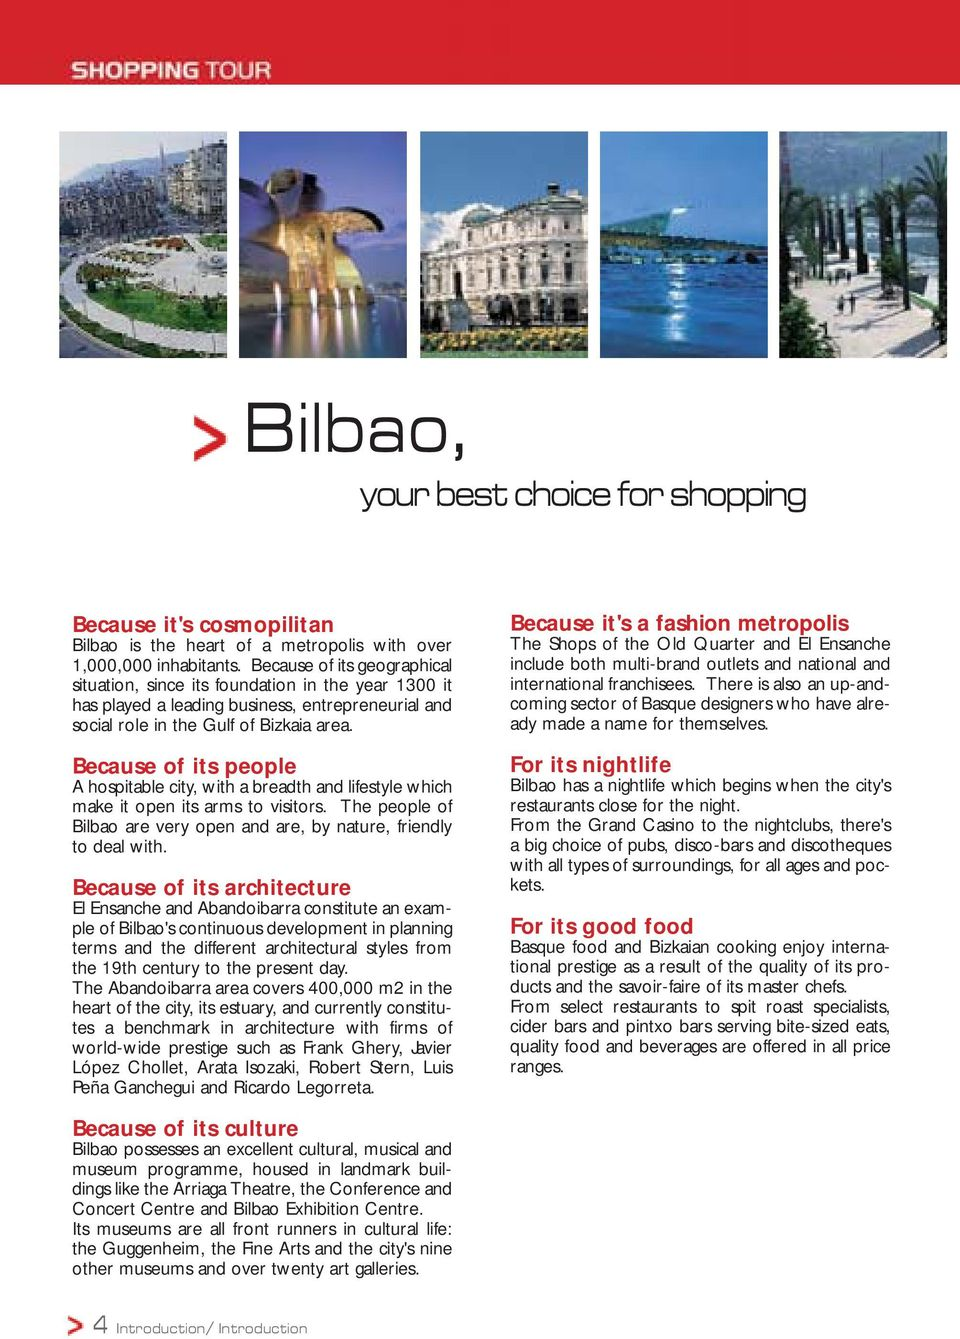 Because of its people A hospitable city, with a breadth and lifestyle which make it open its arms to visitors. The people of Bilbao are very open and are, by nature, friendly to deal with.